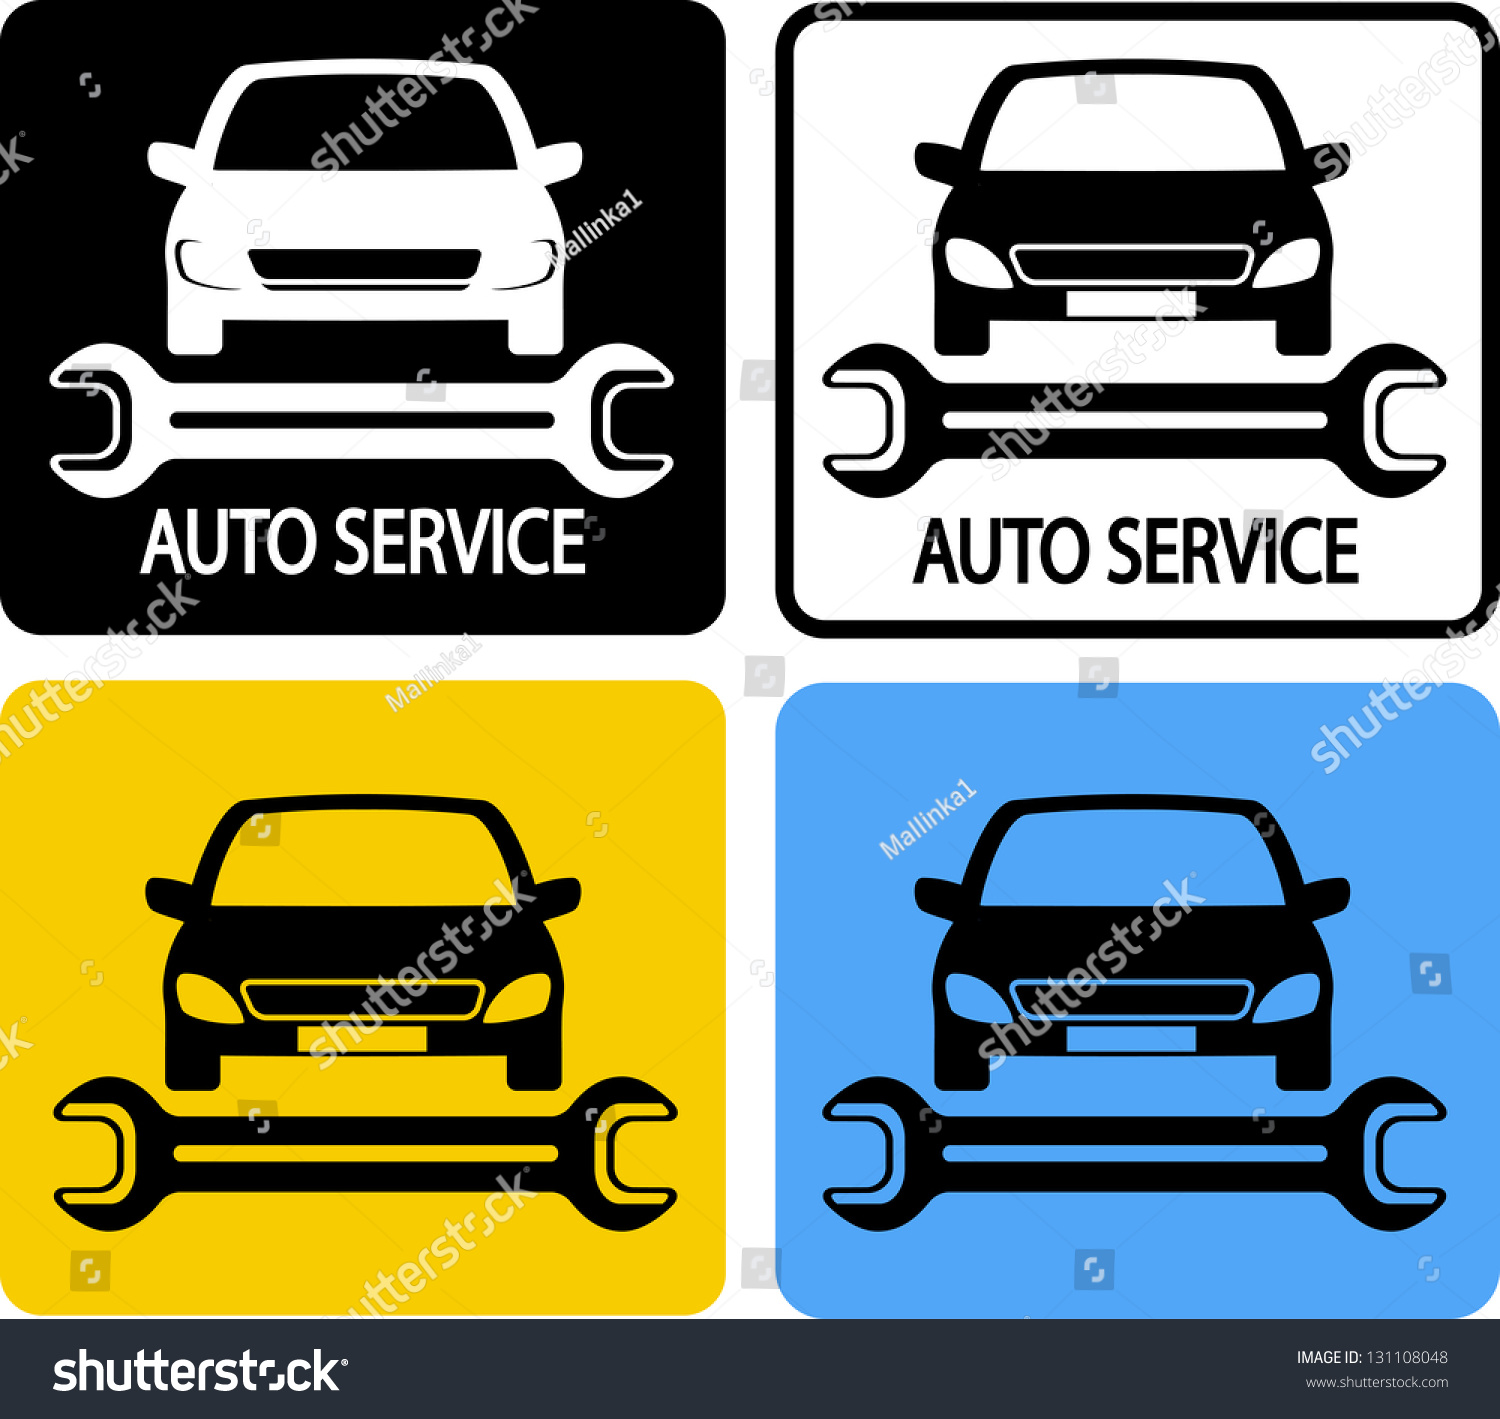 auto service icons set car silhouette stock vector. Black Bedroom Furniture Sets. Home Design Ideas